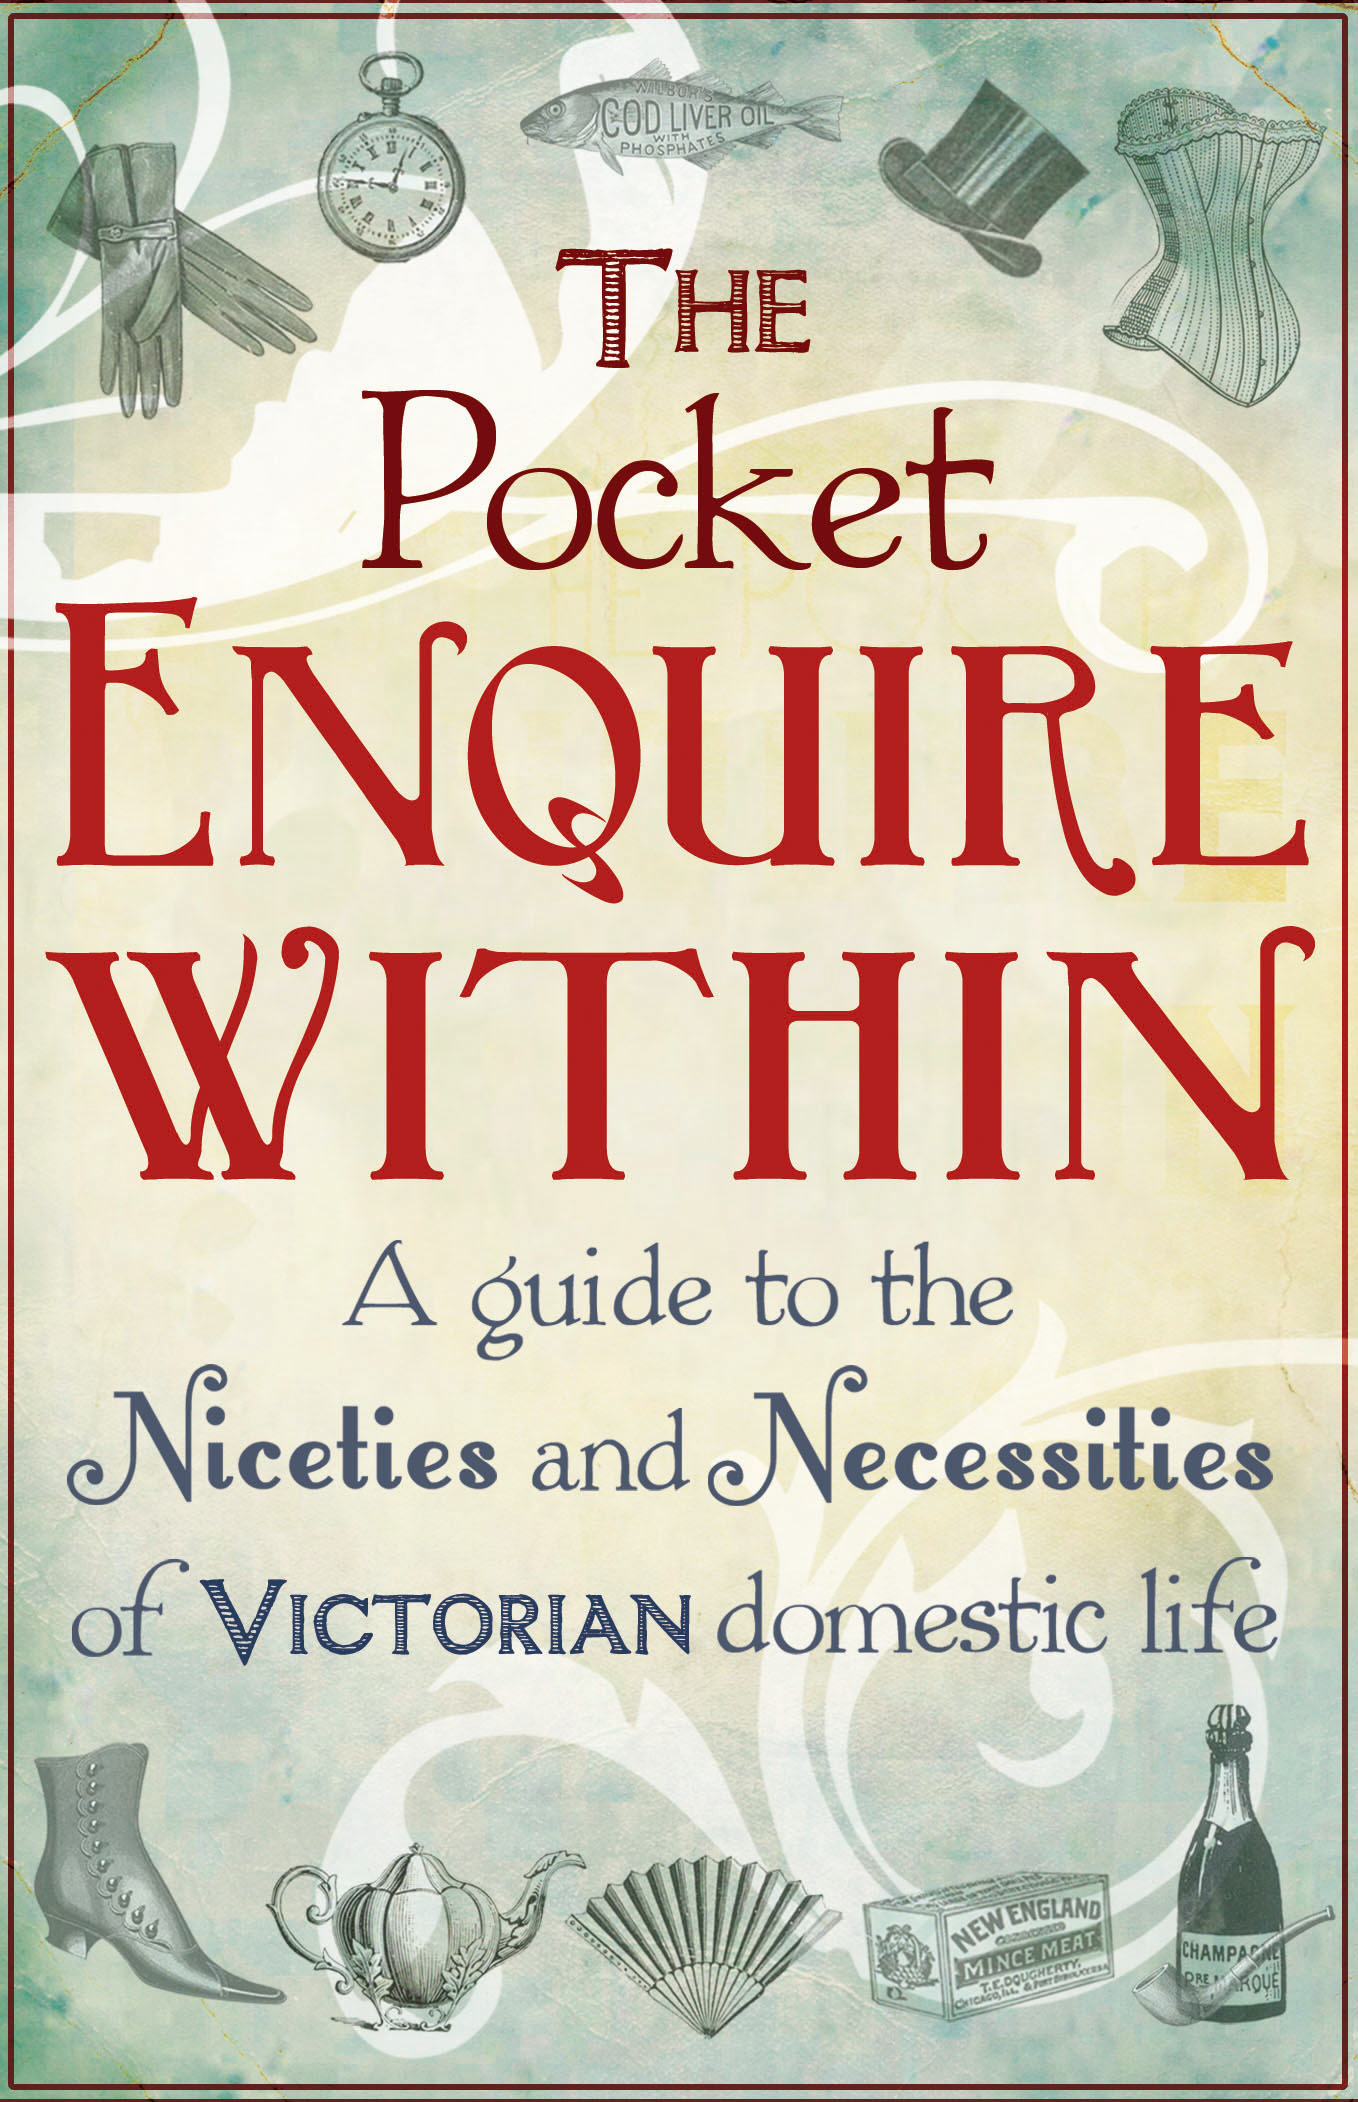 The Pocket Enquire Within A guide to the niceties and necessities of Victorian domestic life